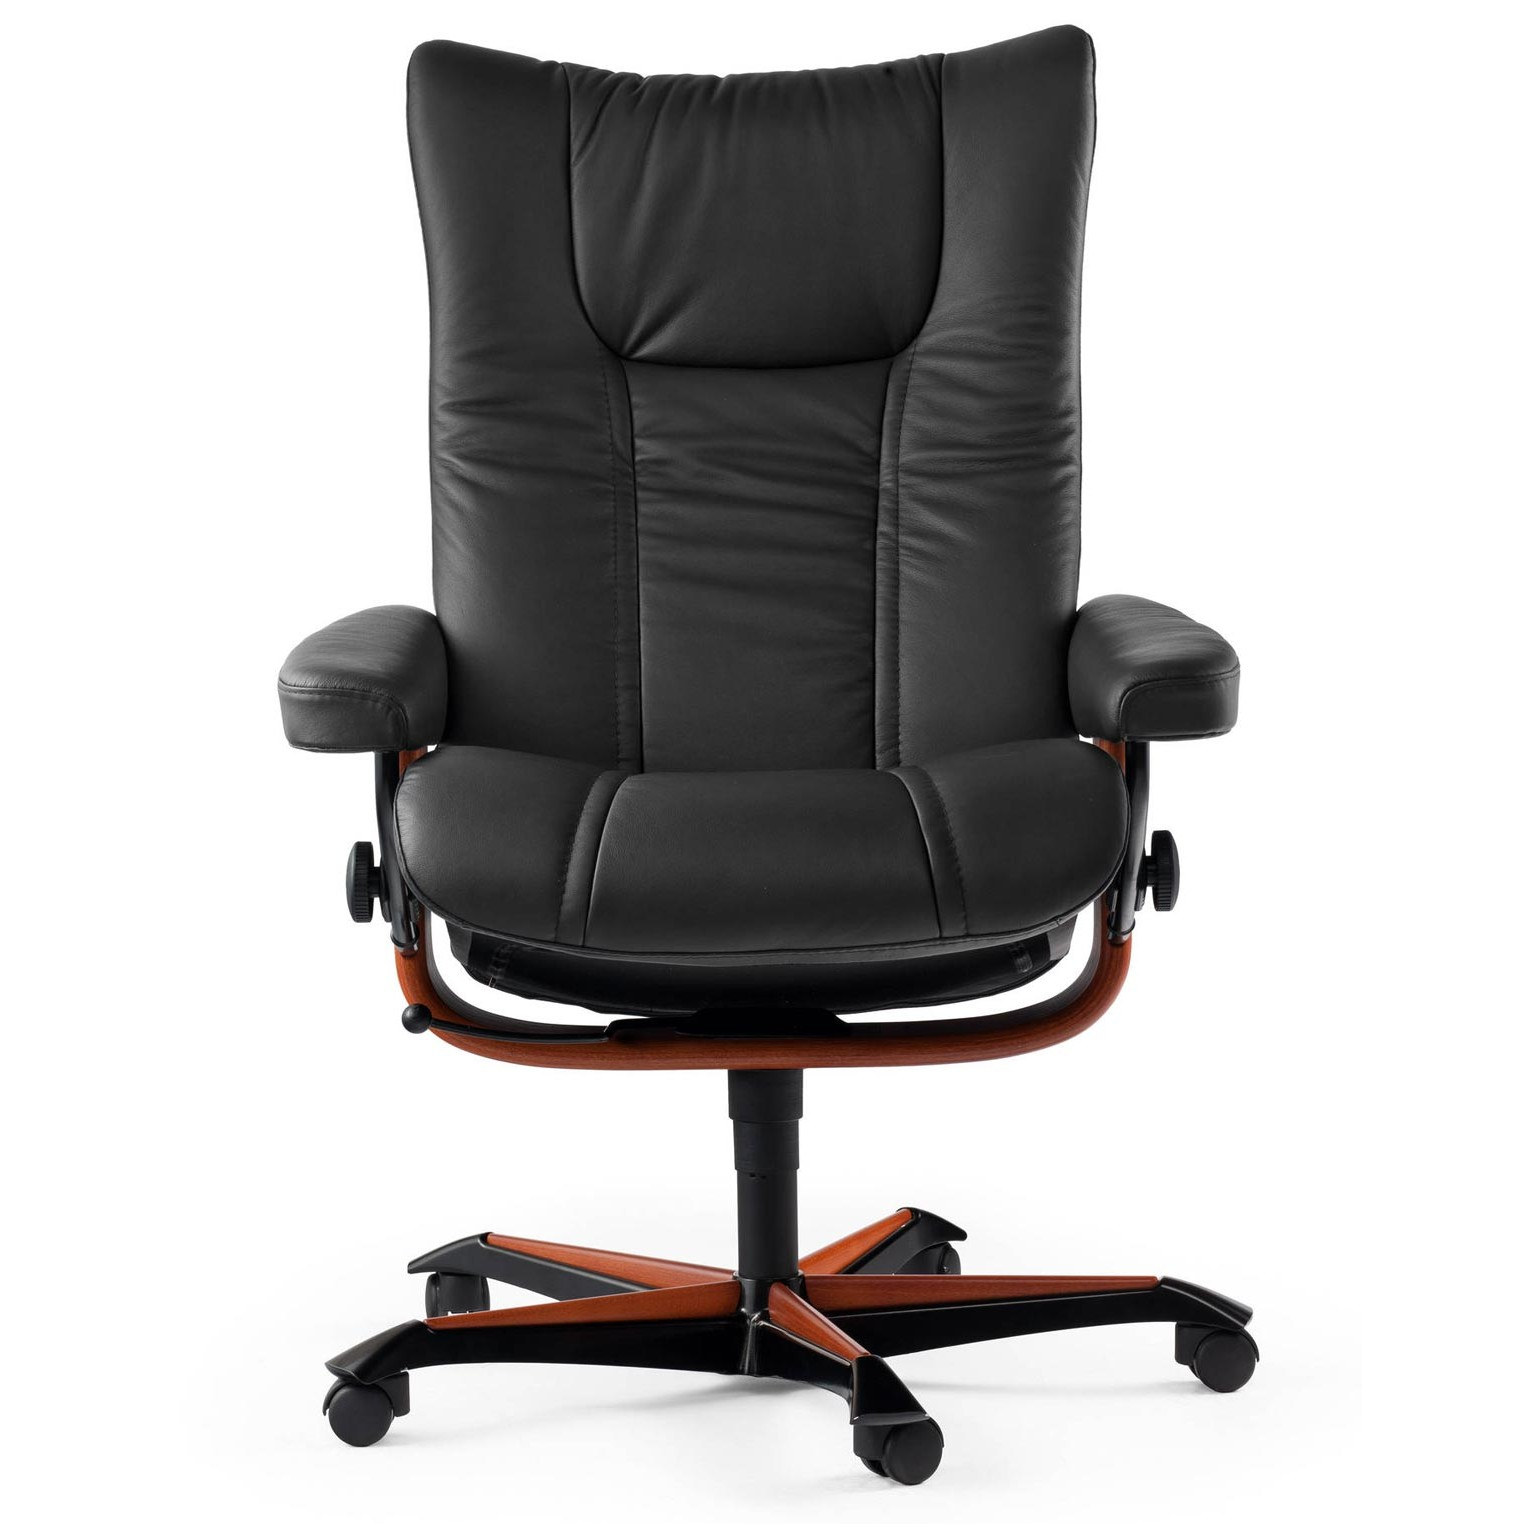 Stressless Office Chair Stressless Wing Office Chair From 2 495 00 By Stressless